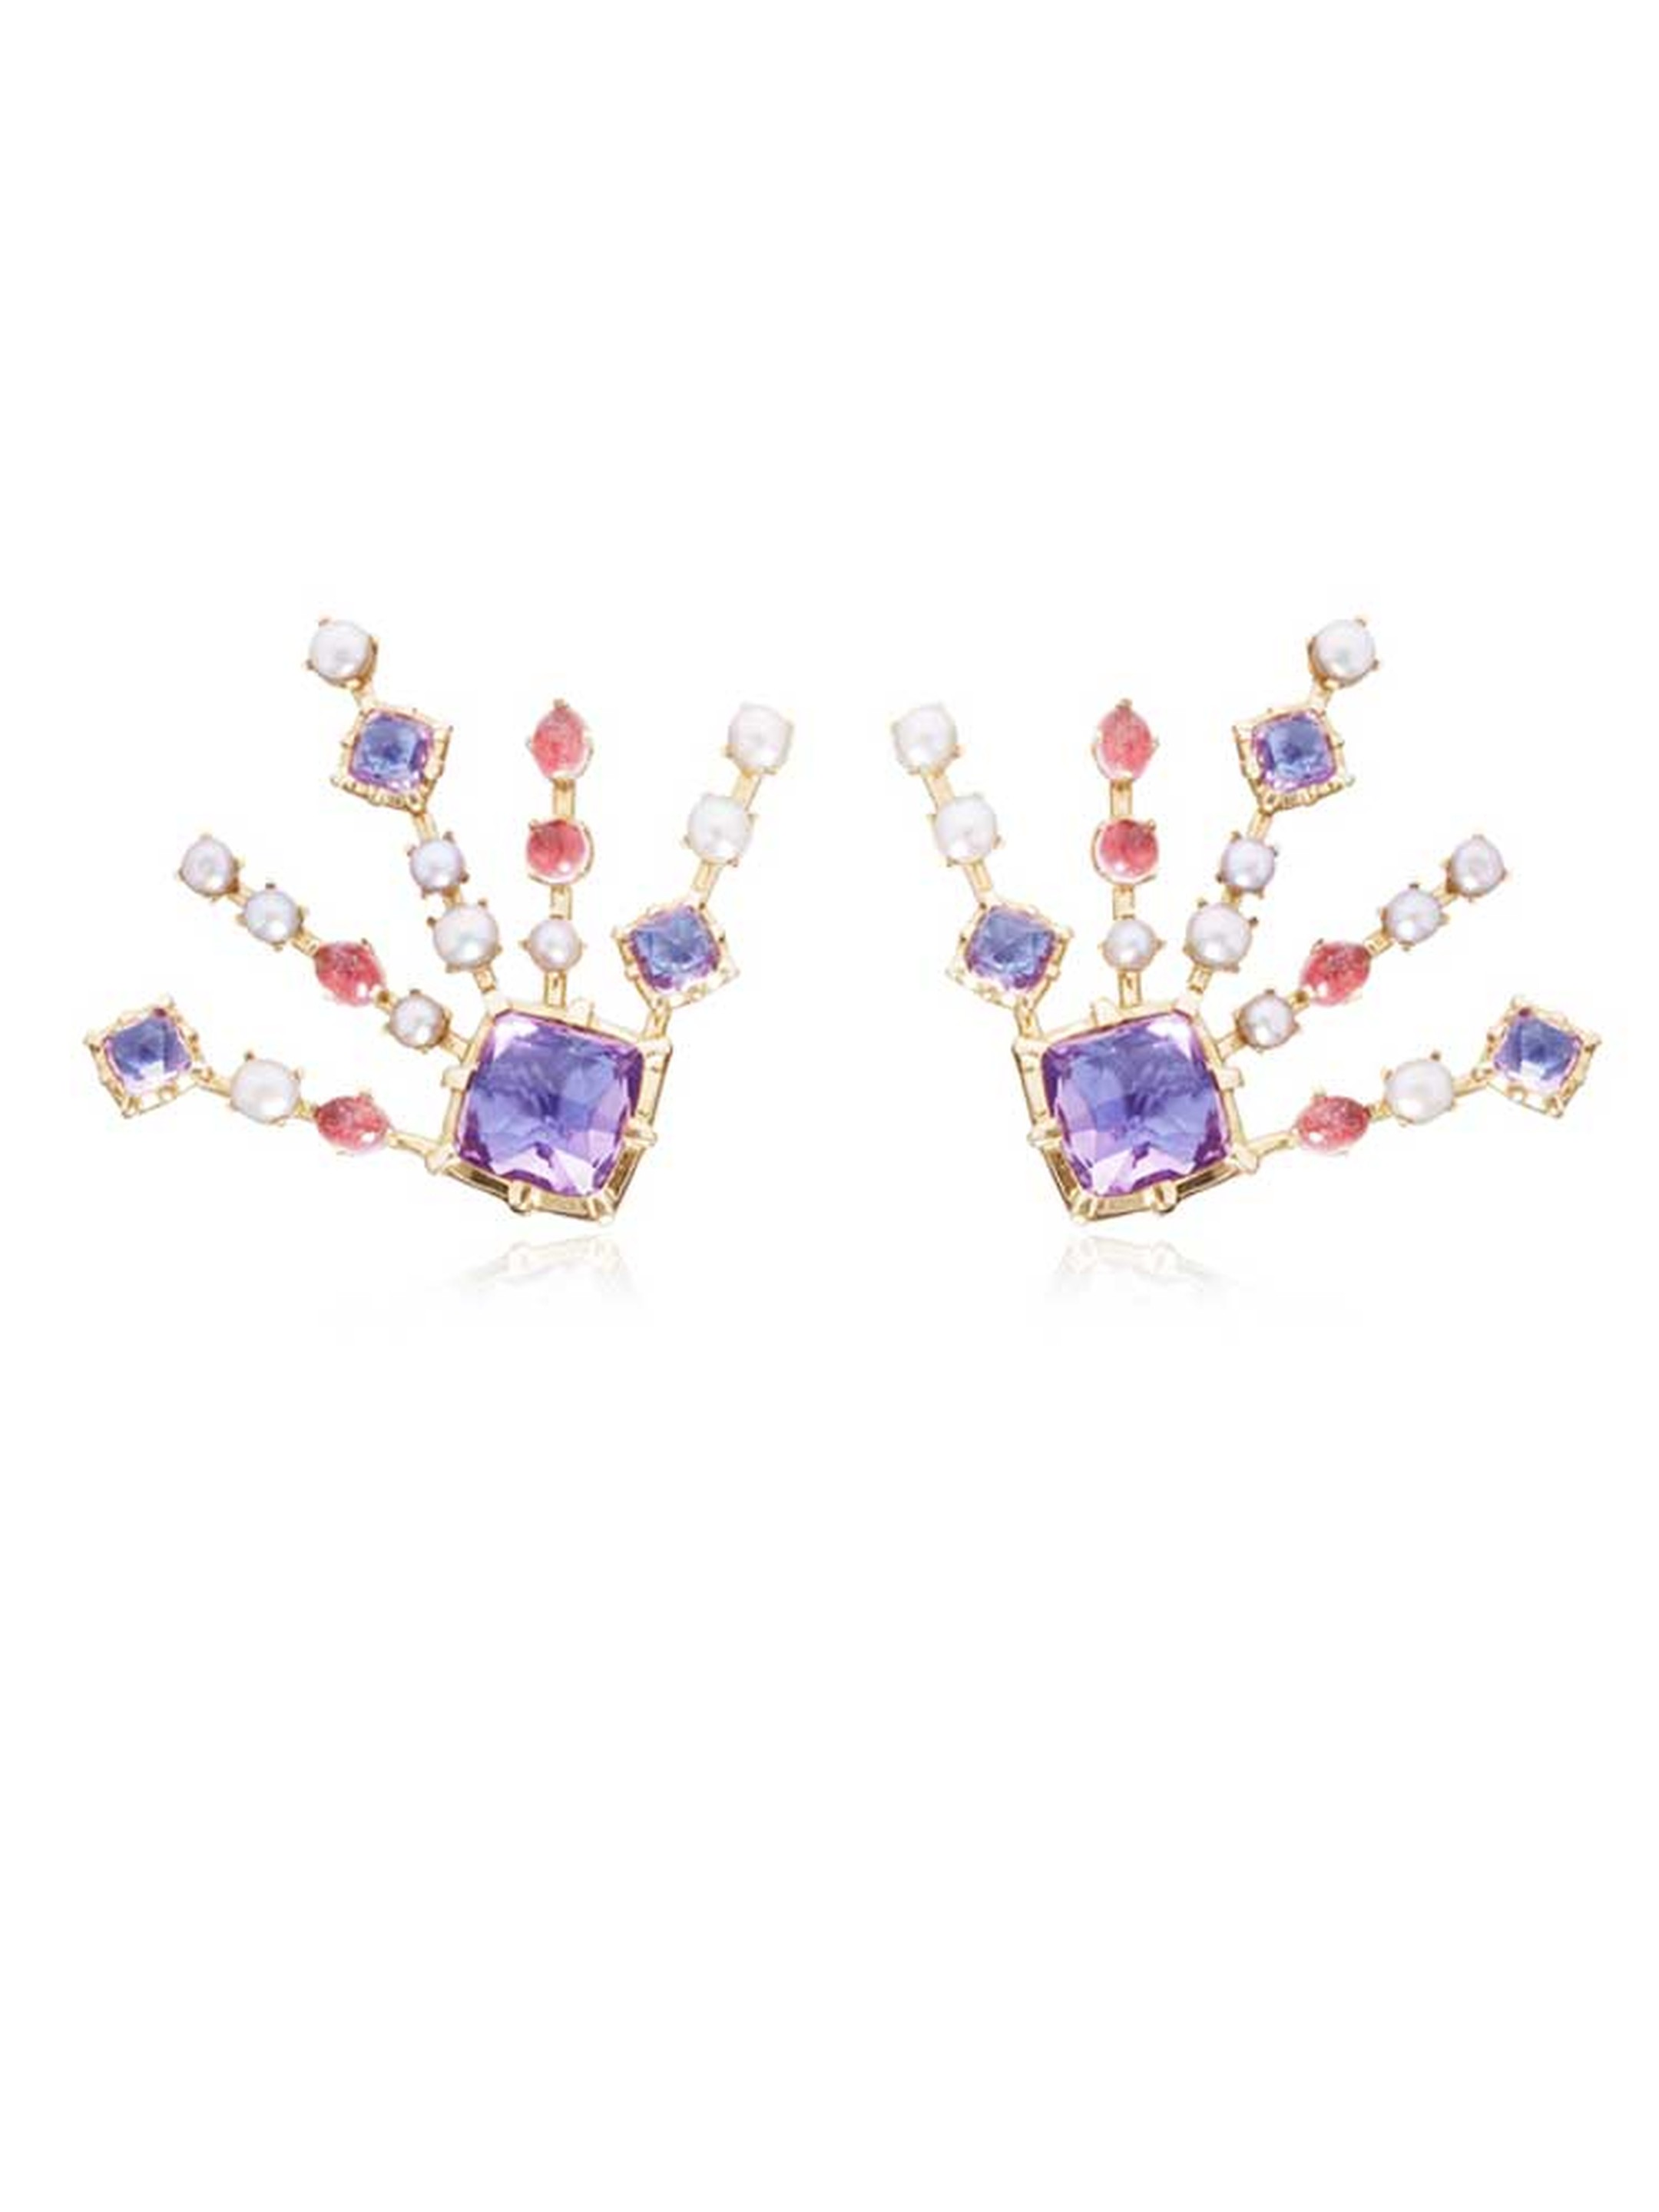 Larkspur & Hawk Large Bella earrings, available from Moda Operandi.